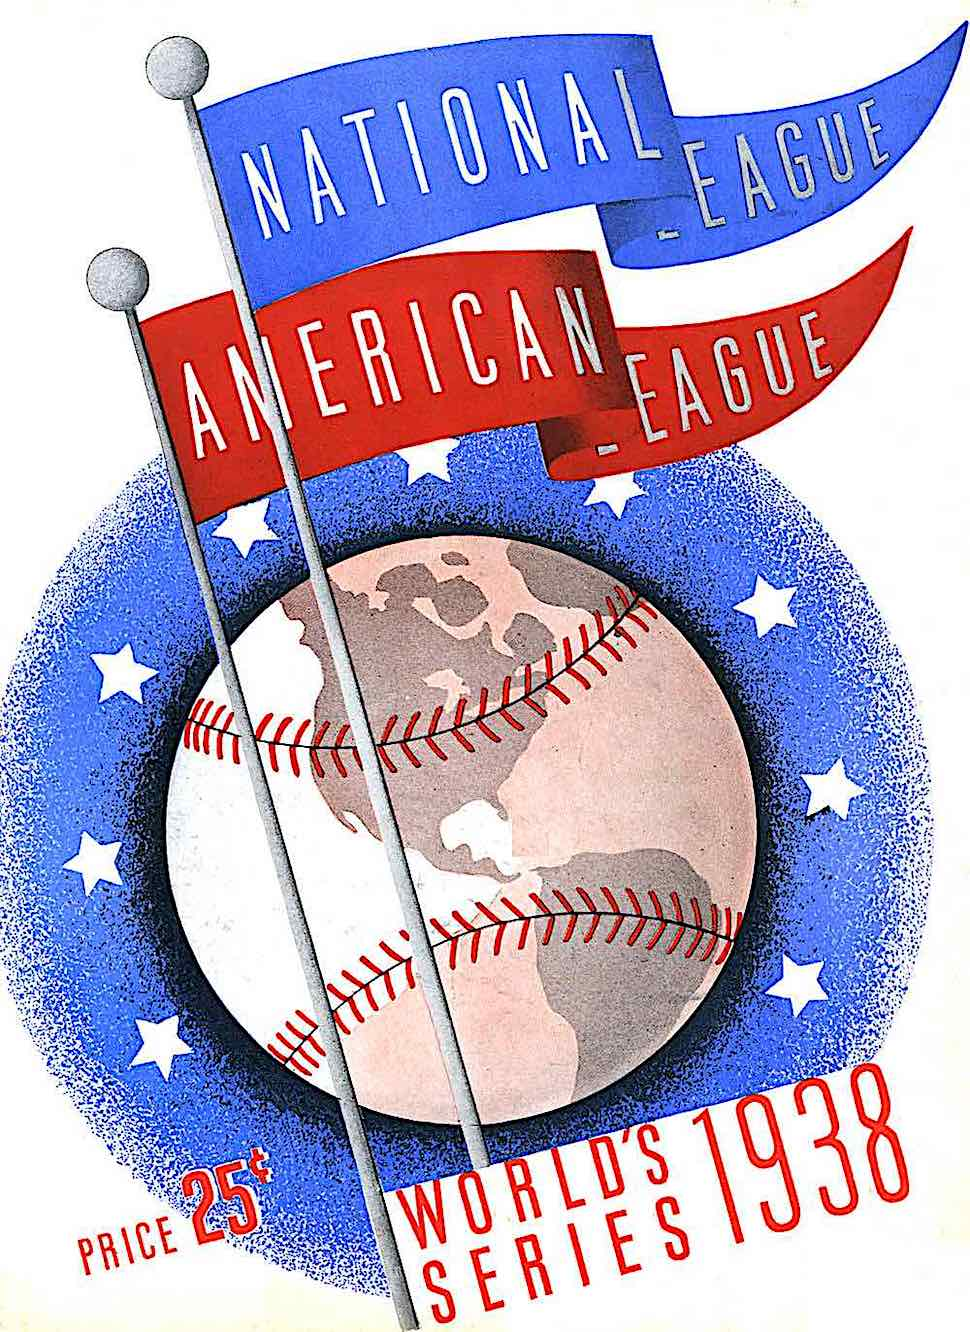 an Otis Shepard poster for the 1938 World Series baseball, showing the Earth as a giant baseball